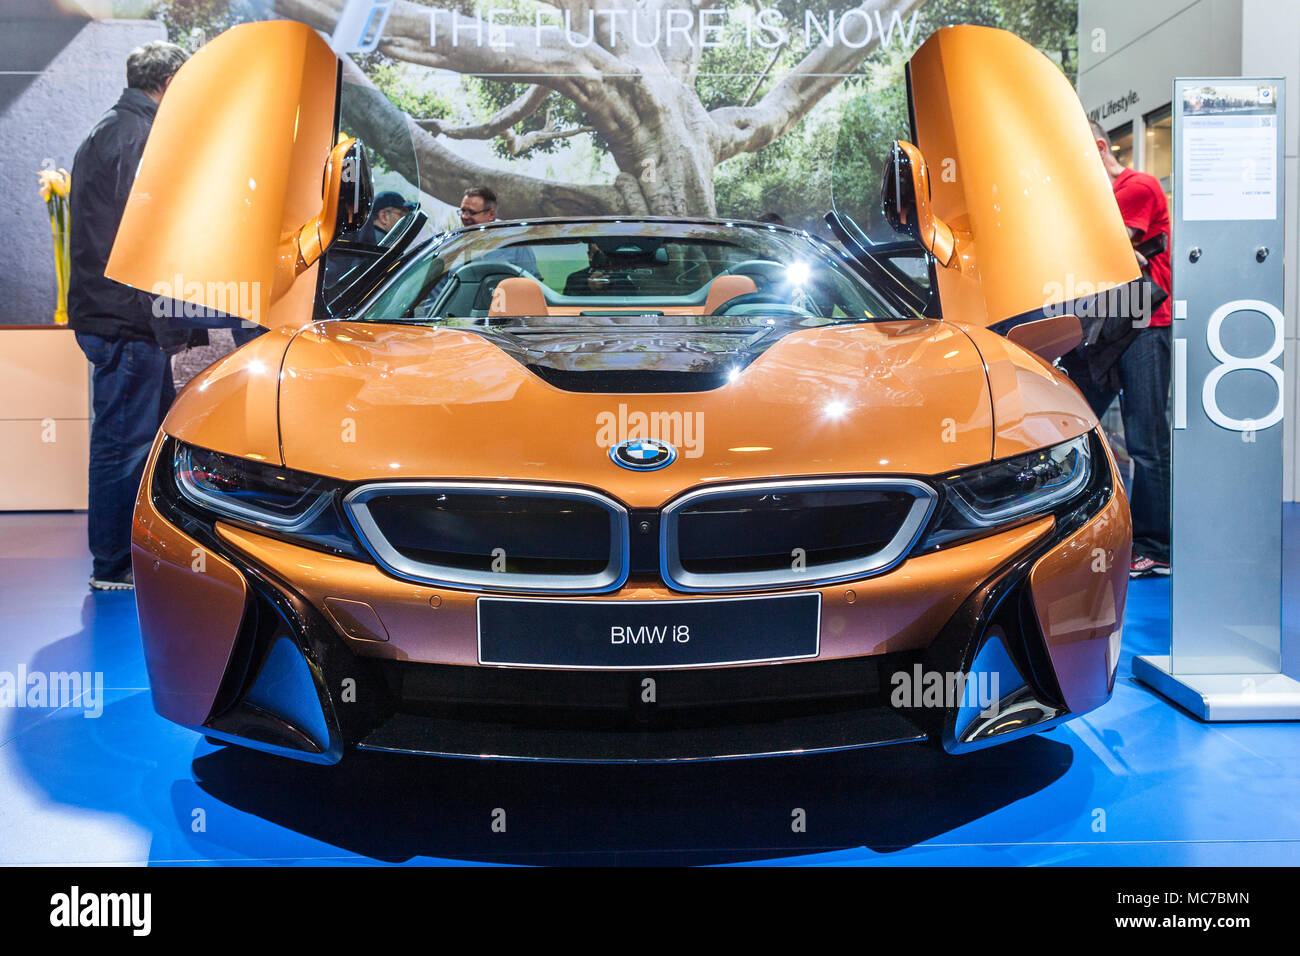 Showroom Supercar Stock Photos Amp Showroom Supercar Stock Images Alamy